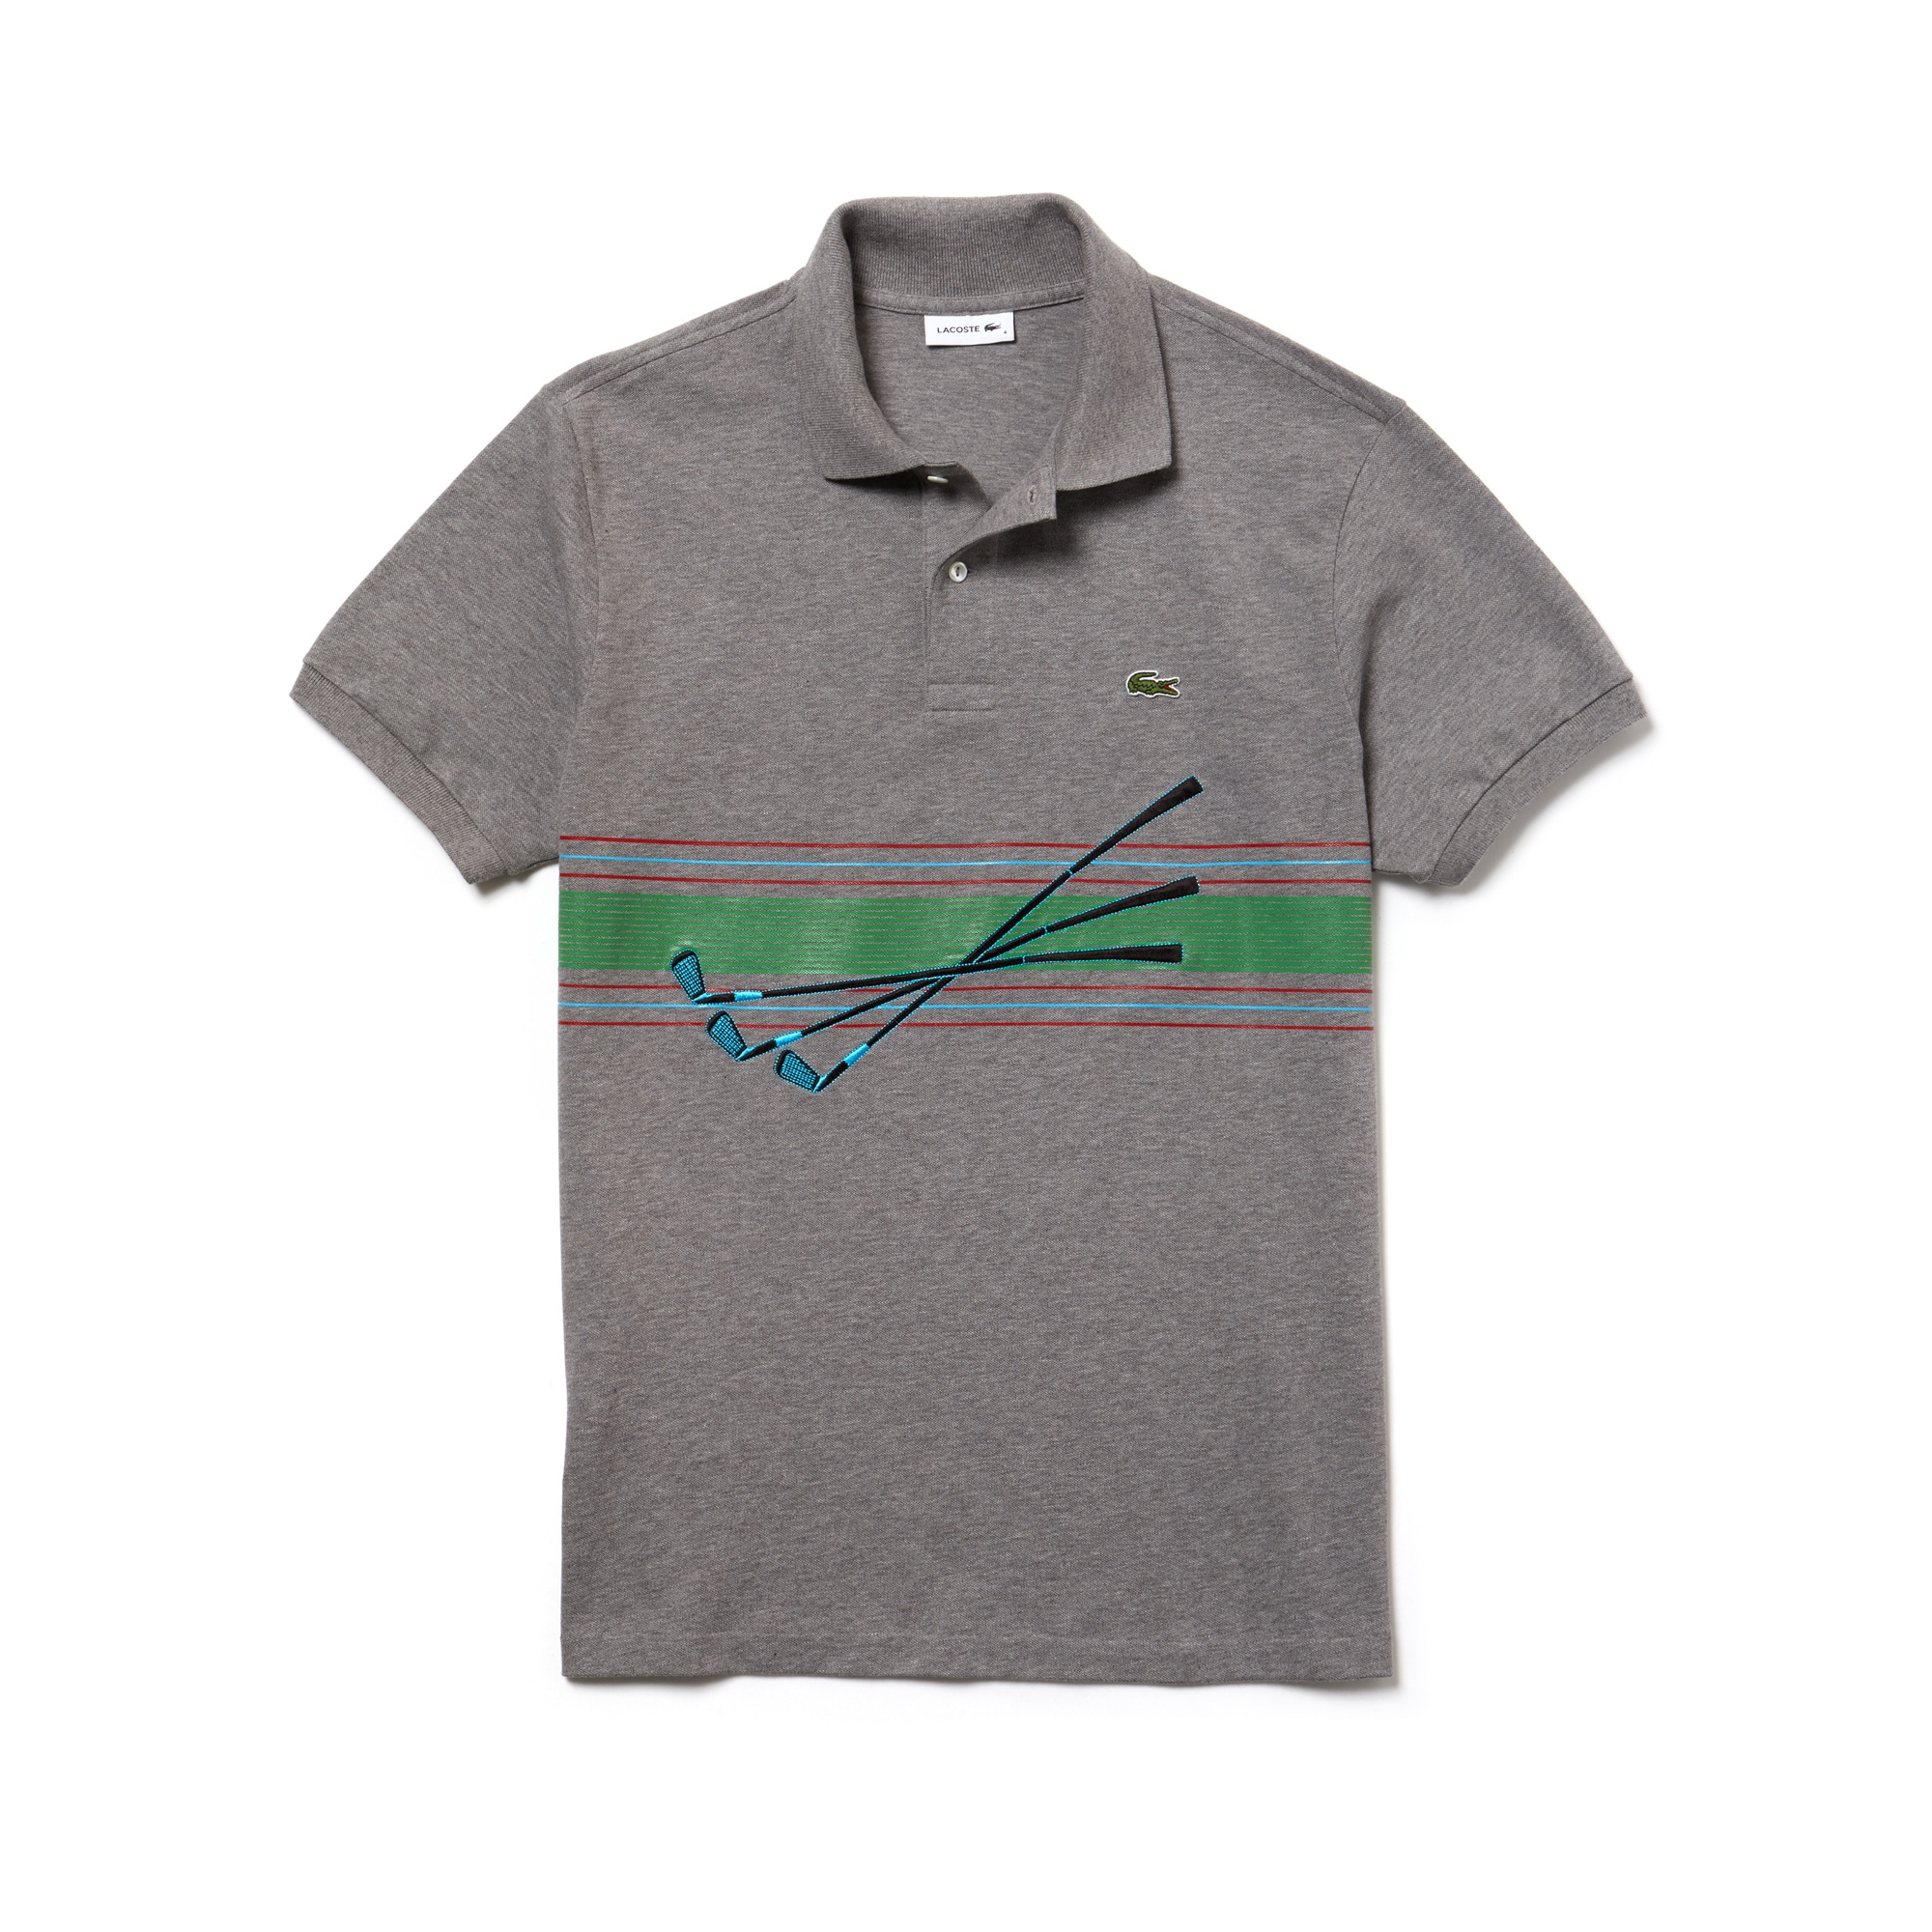 Mens 라코스테 Lacoste Fashion Show Embroidered Cotton Pique Polo,silver grey chine